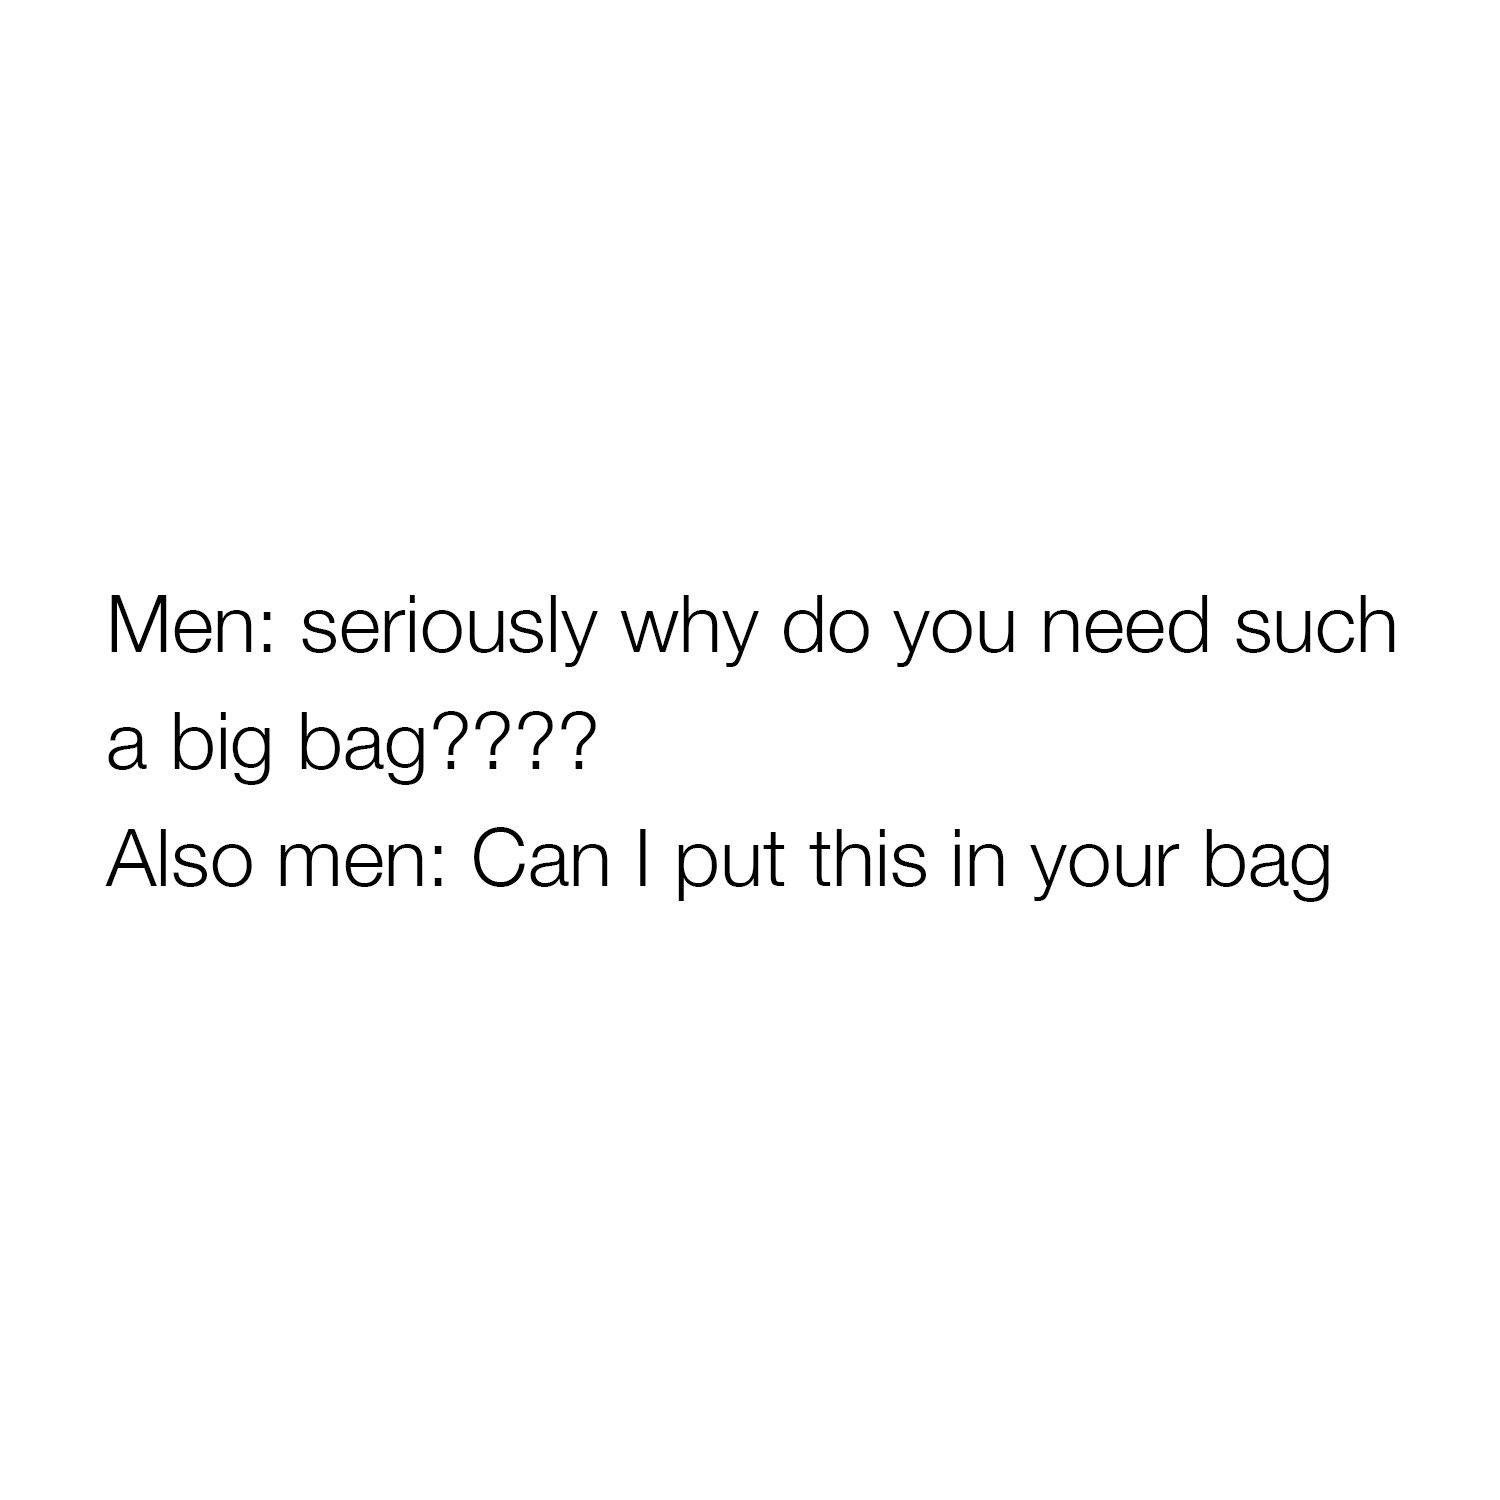 Men: Seriously Why...